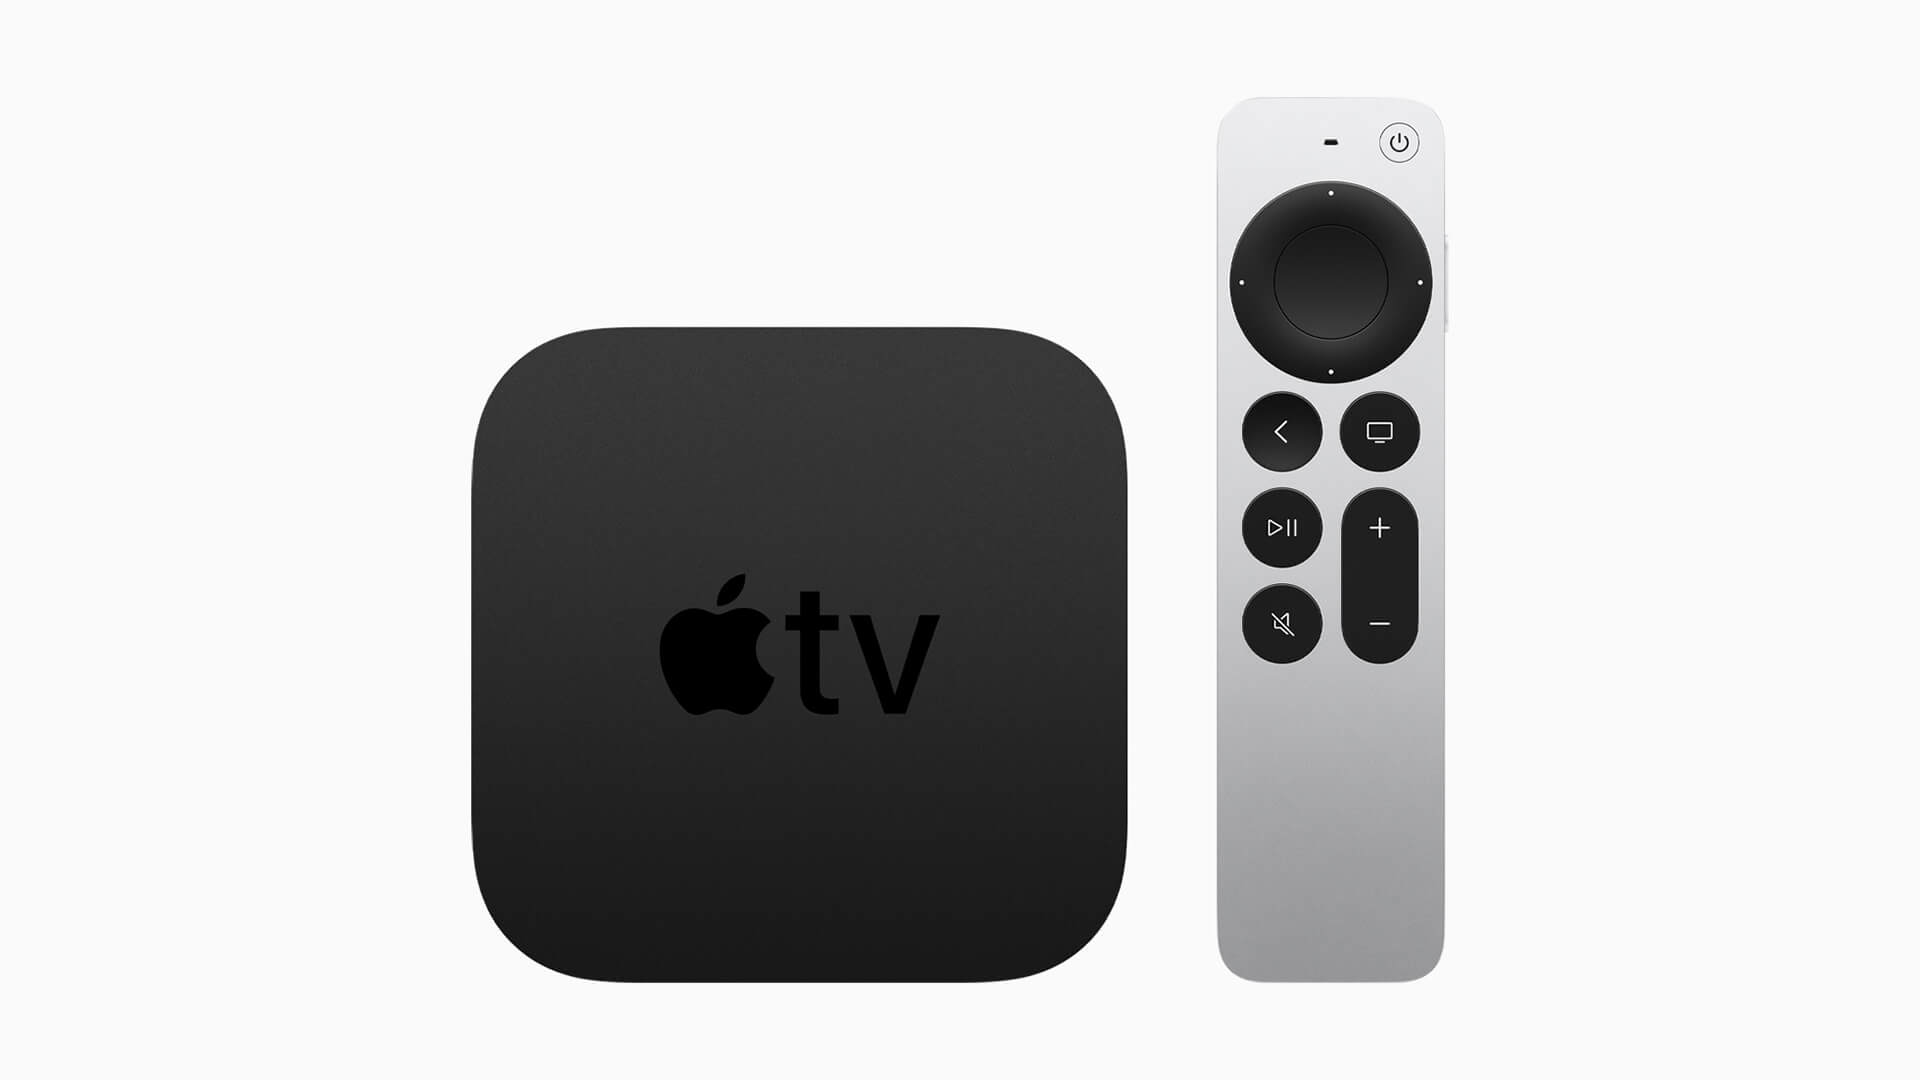 New Apple TV 4K Features A12 Bionic Chip, New Siri Remote: Specs, Price in India